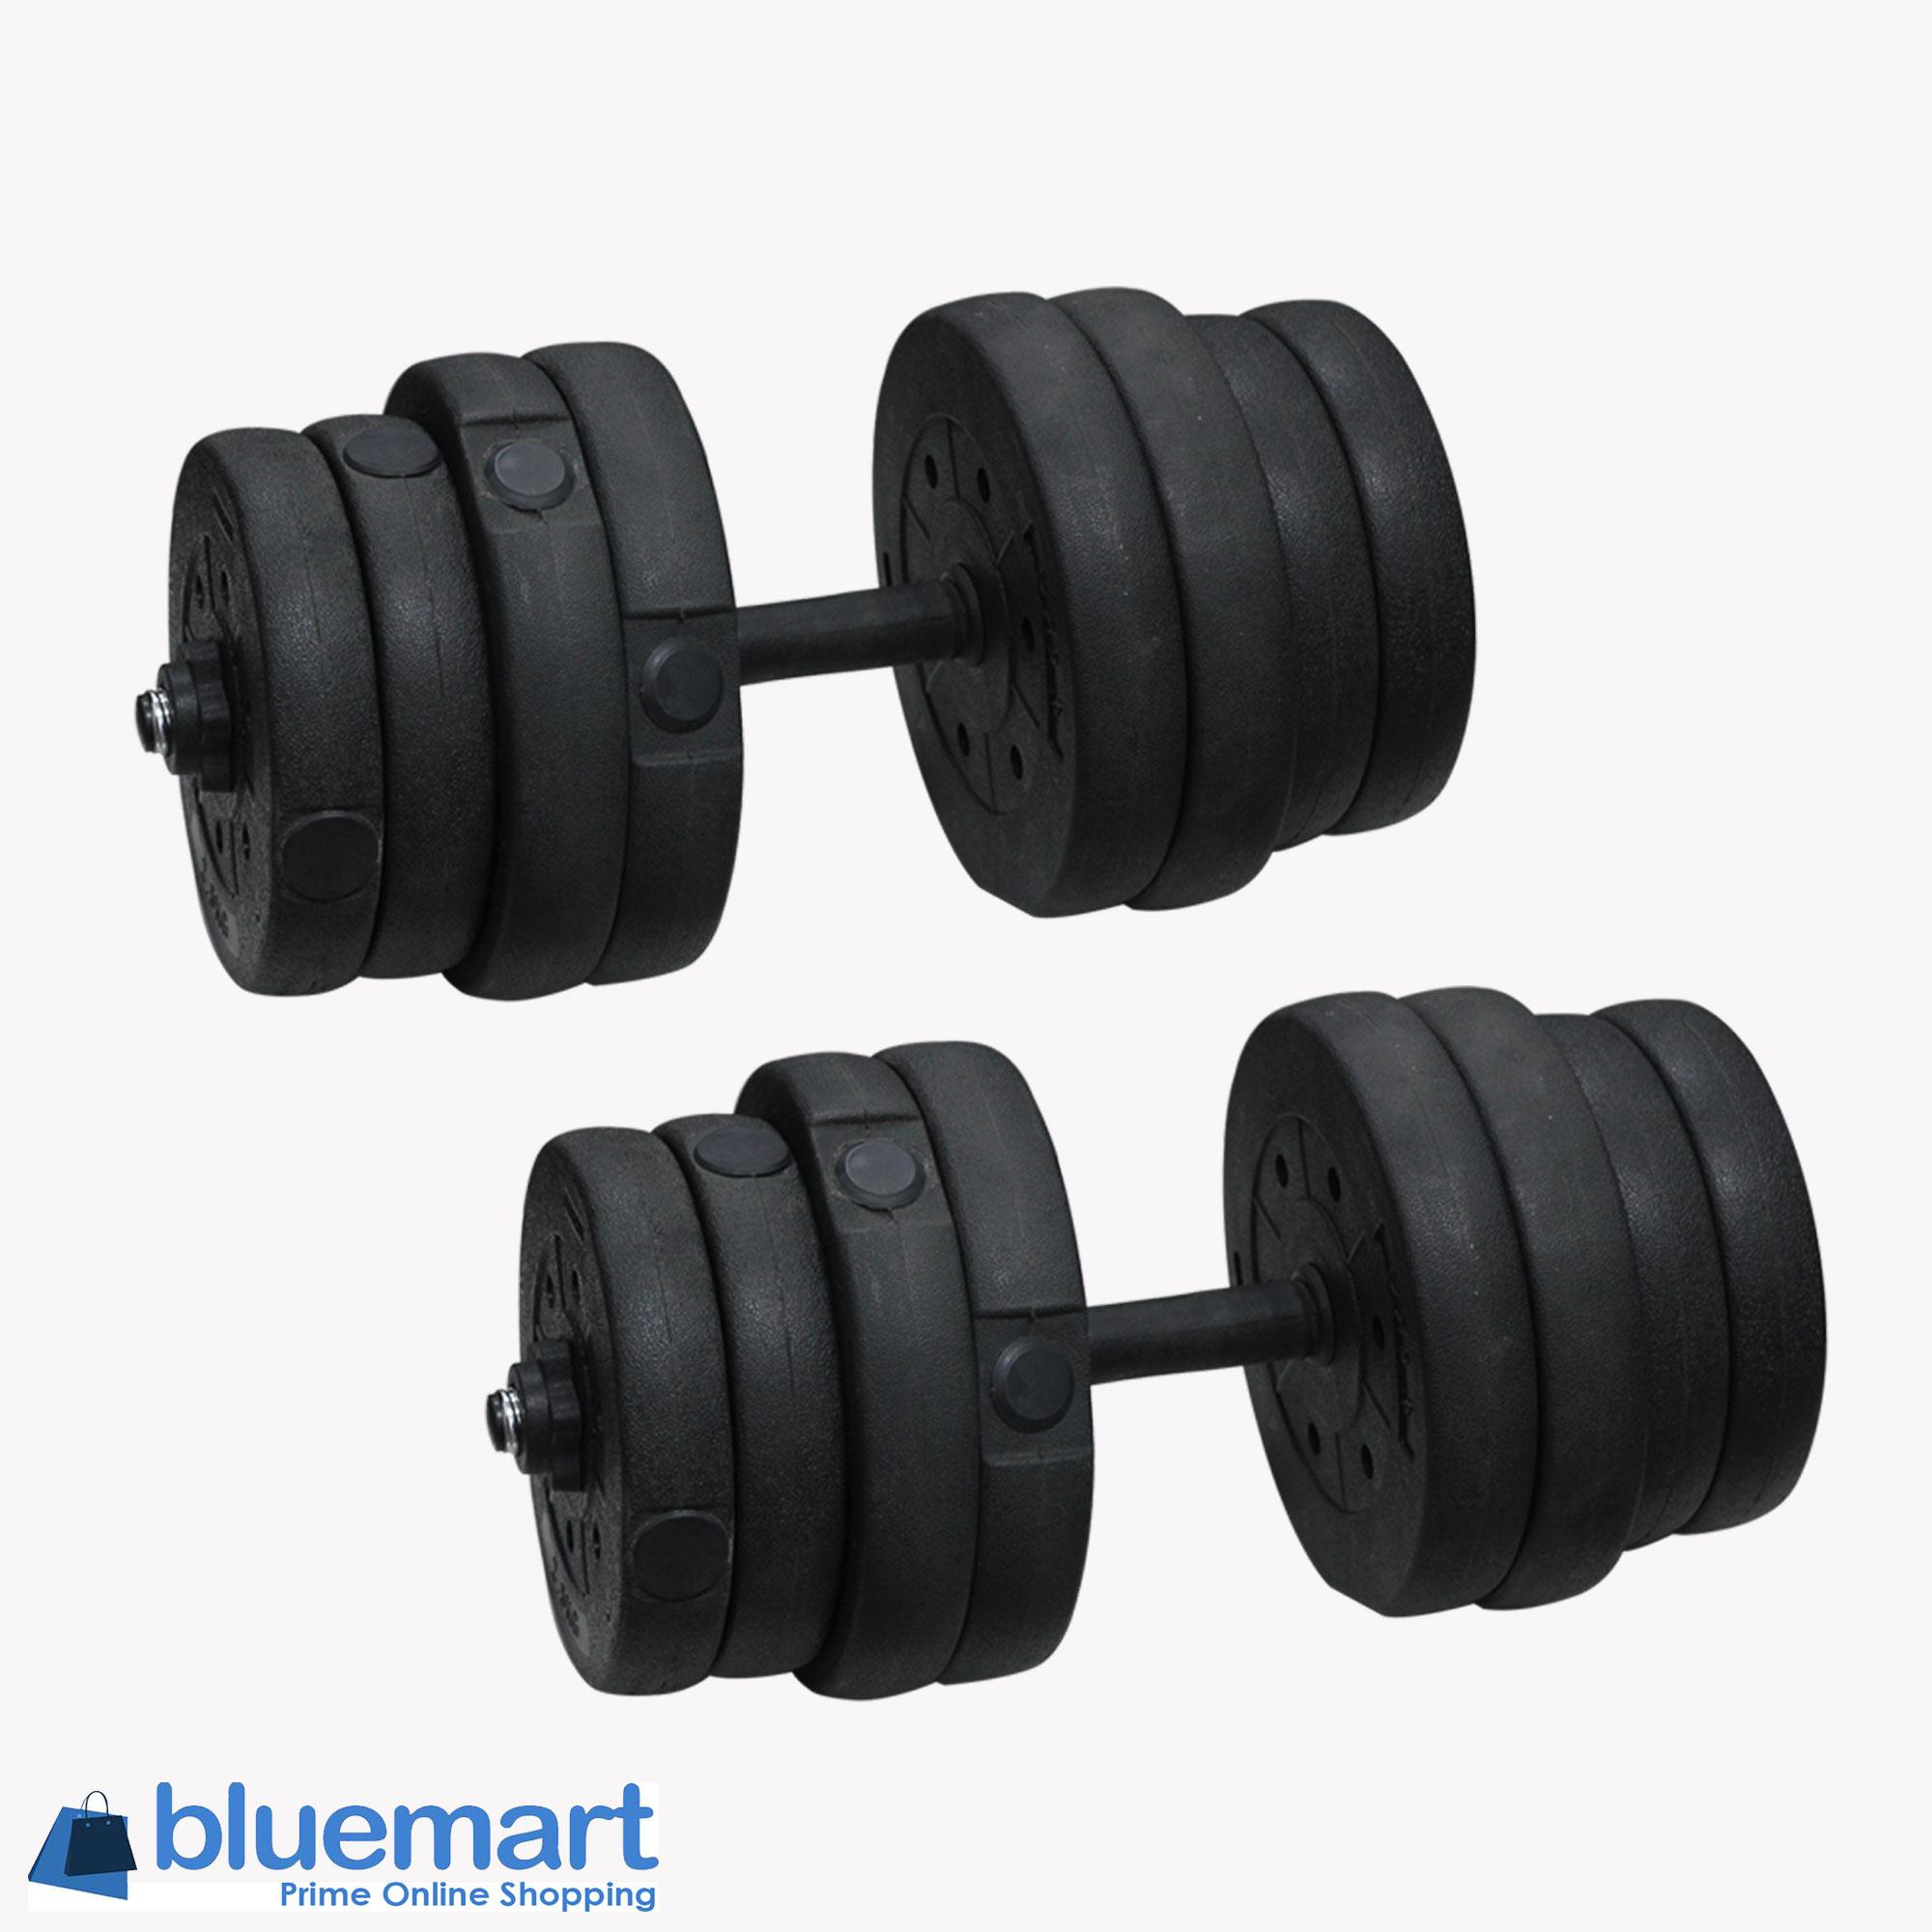 Dumbbells For Sale Dumbbell Set Online Brands Prices Reviews In Barbel 10 Kg 50 Including The Bar With Extension Adapter Gym Fitness Exercise